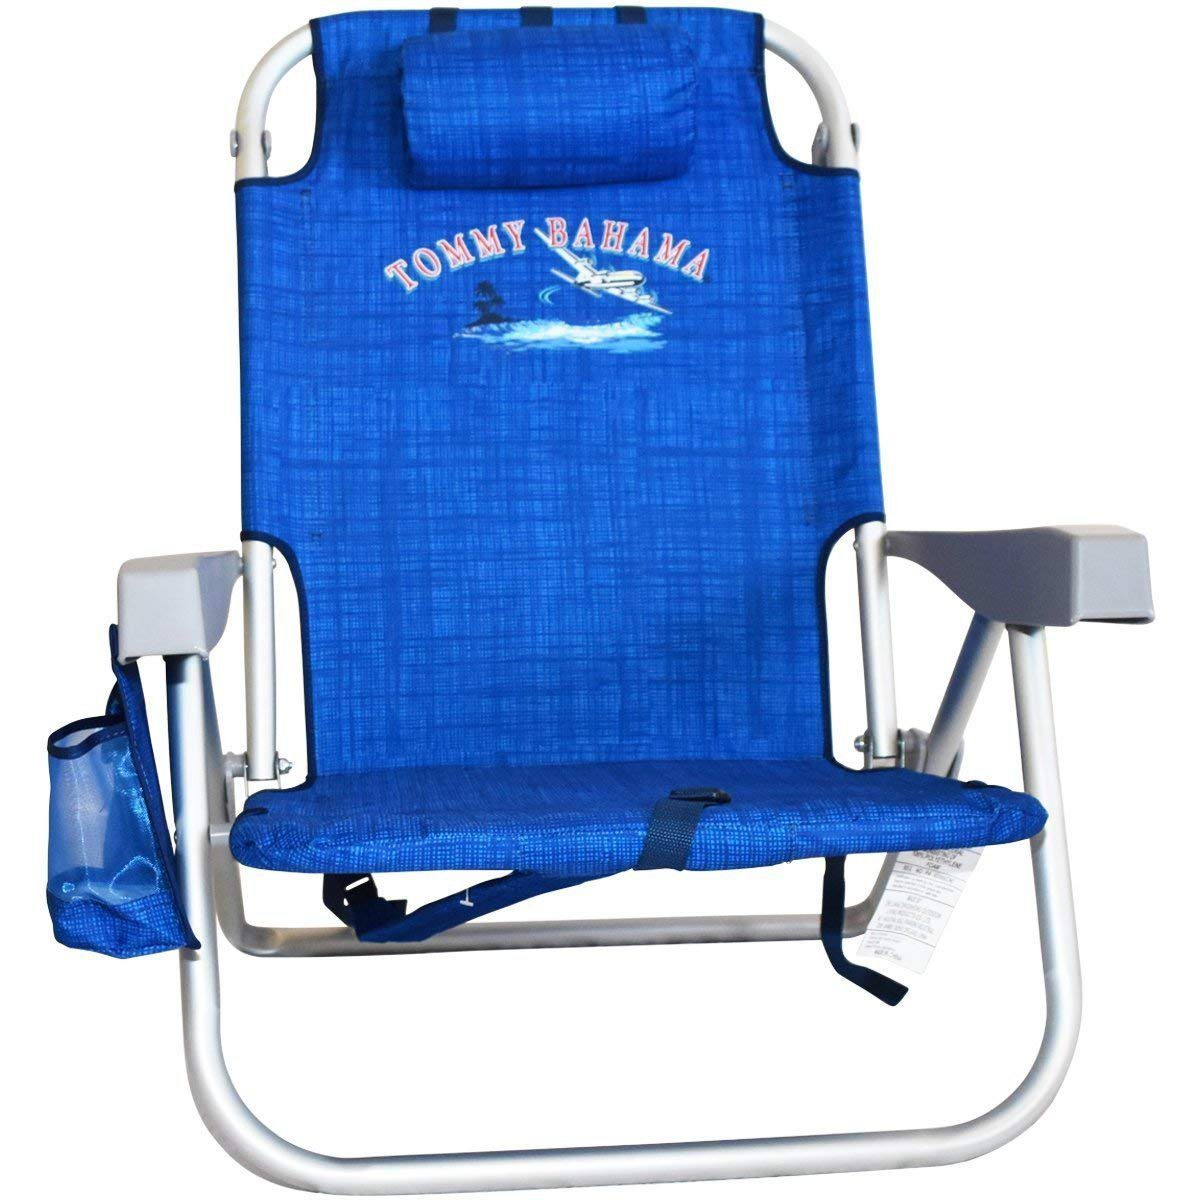 Top 10 Best Portable Beach Chairs in 2020 - The Double Check